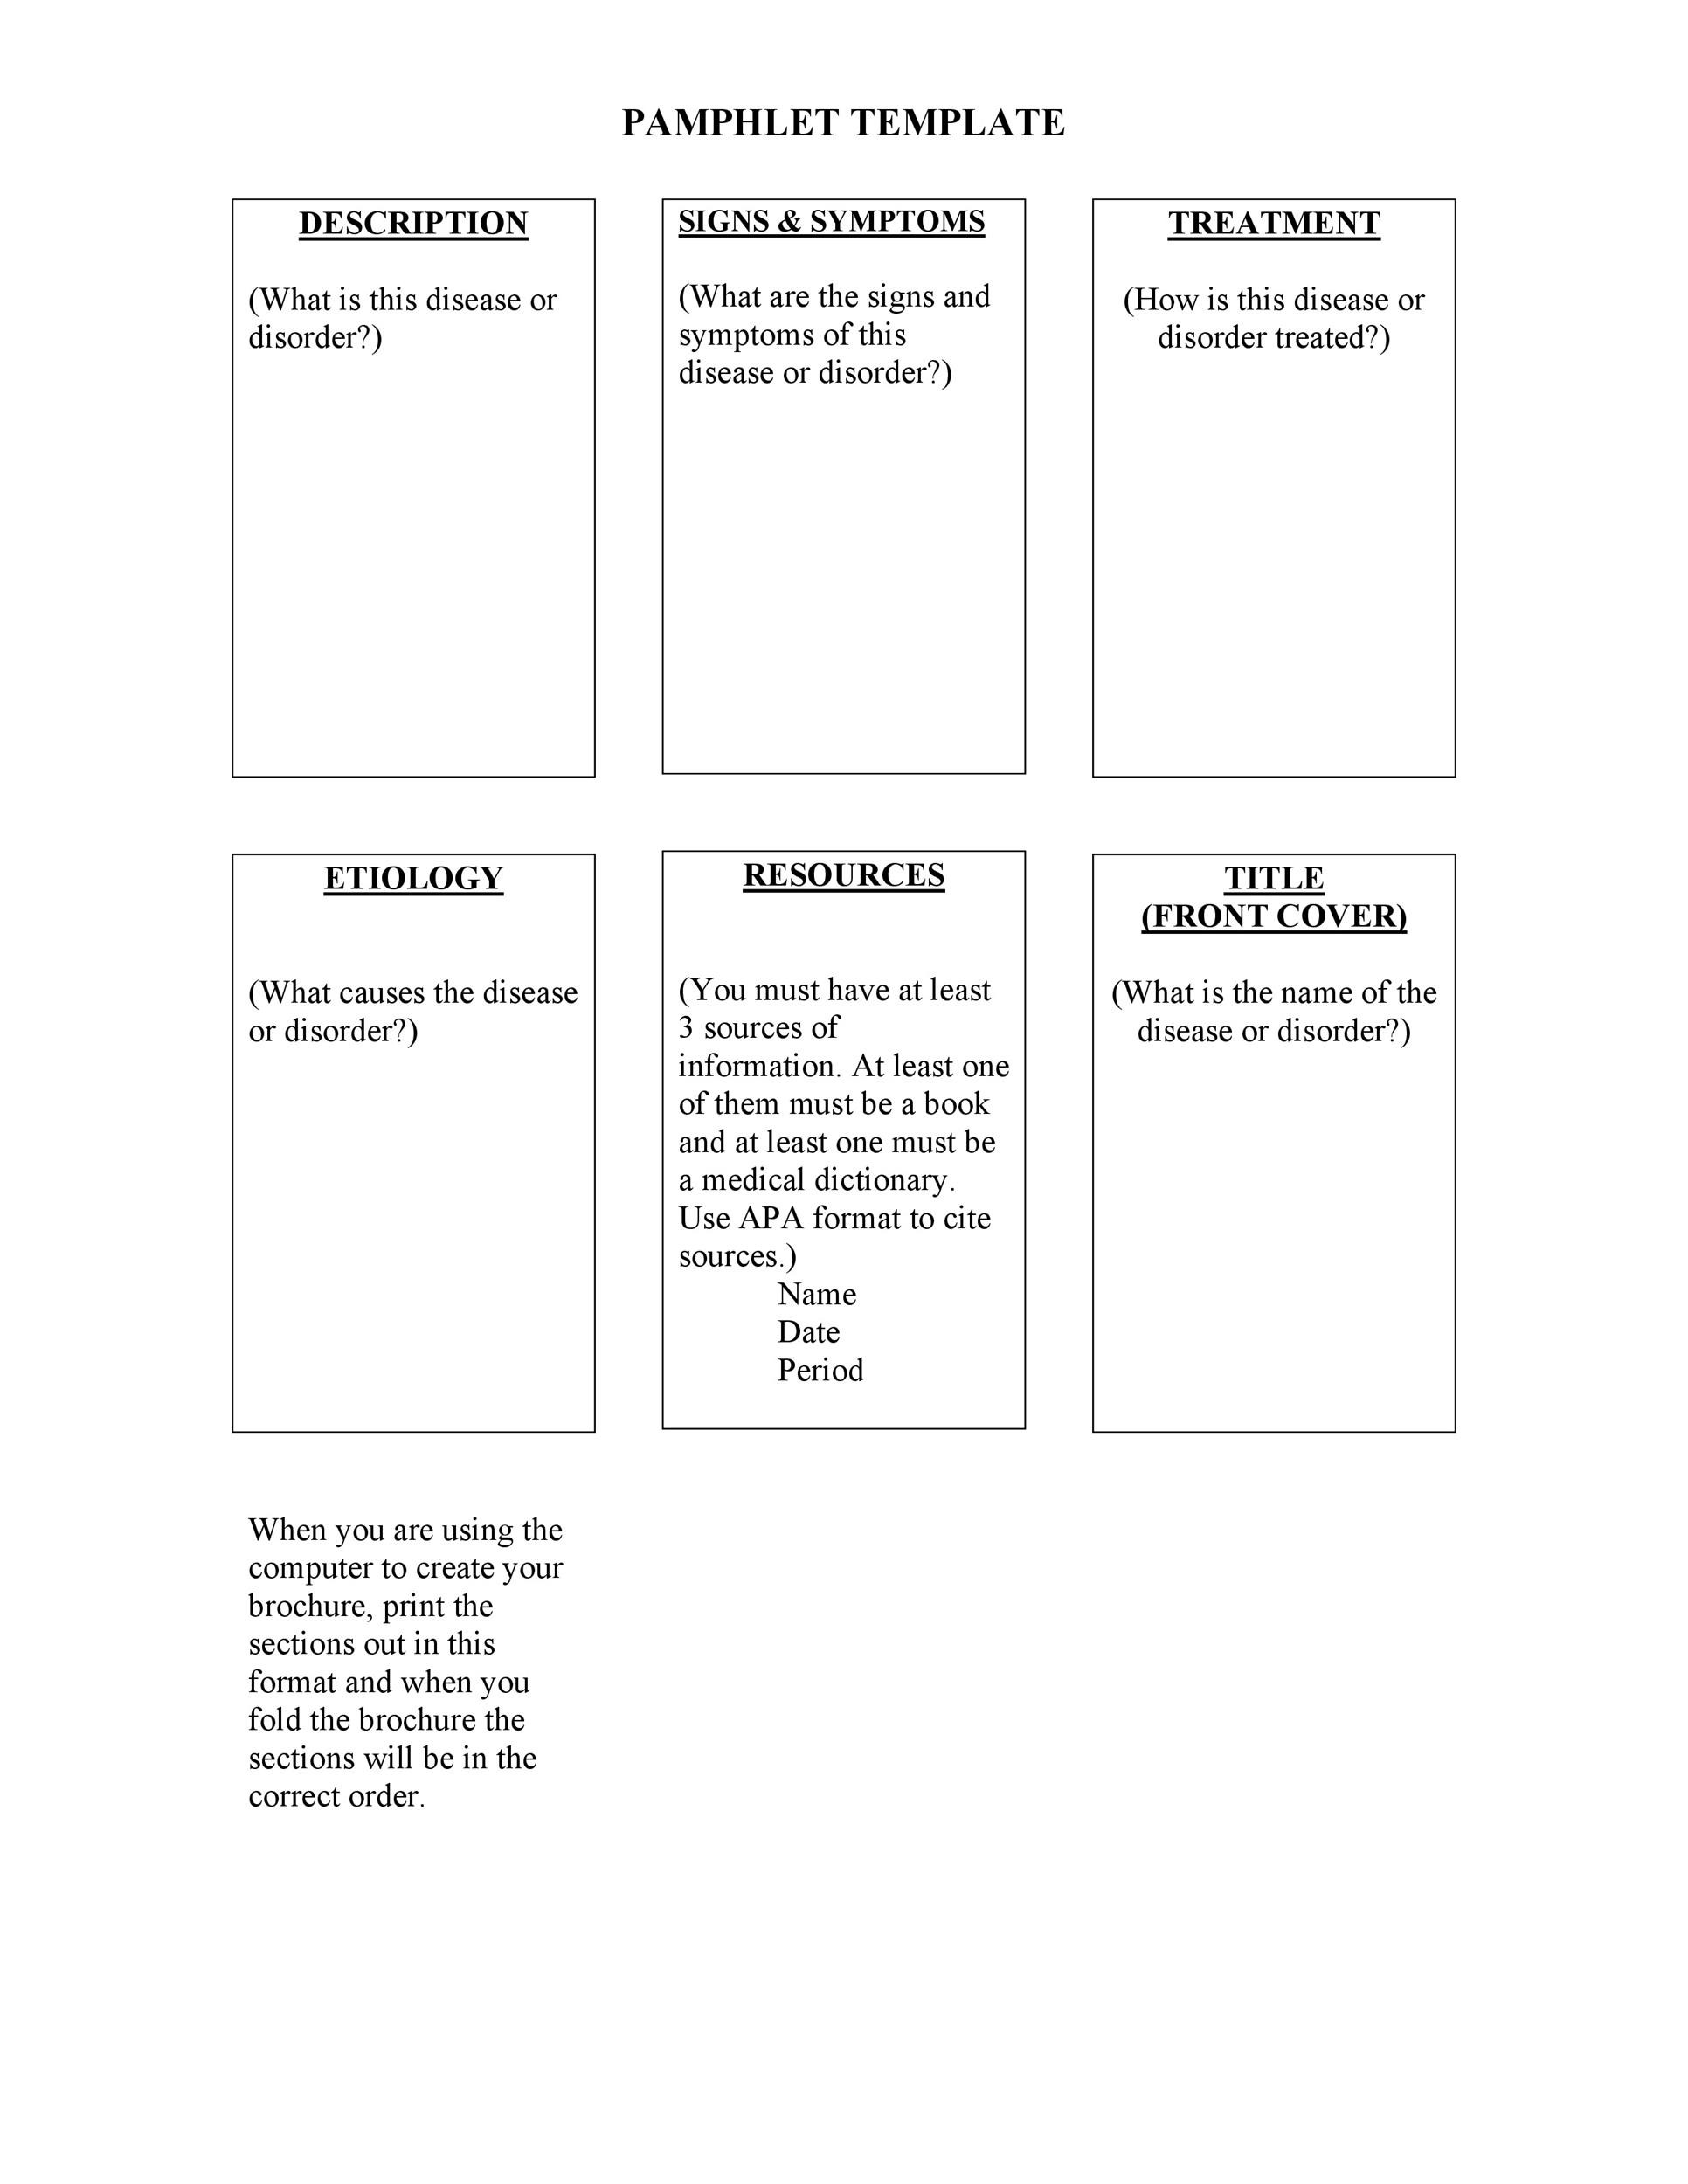 50 FREE Pamphlet Templates Word / Google Docs ᐅ Template Lab